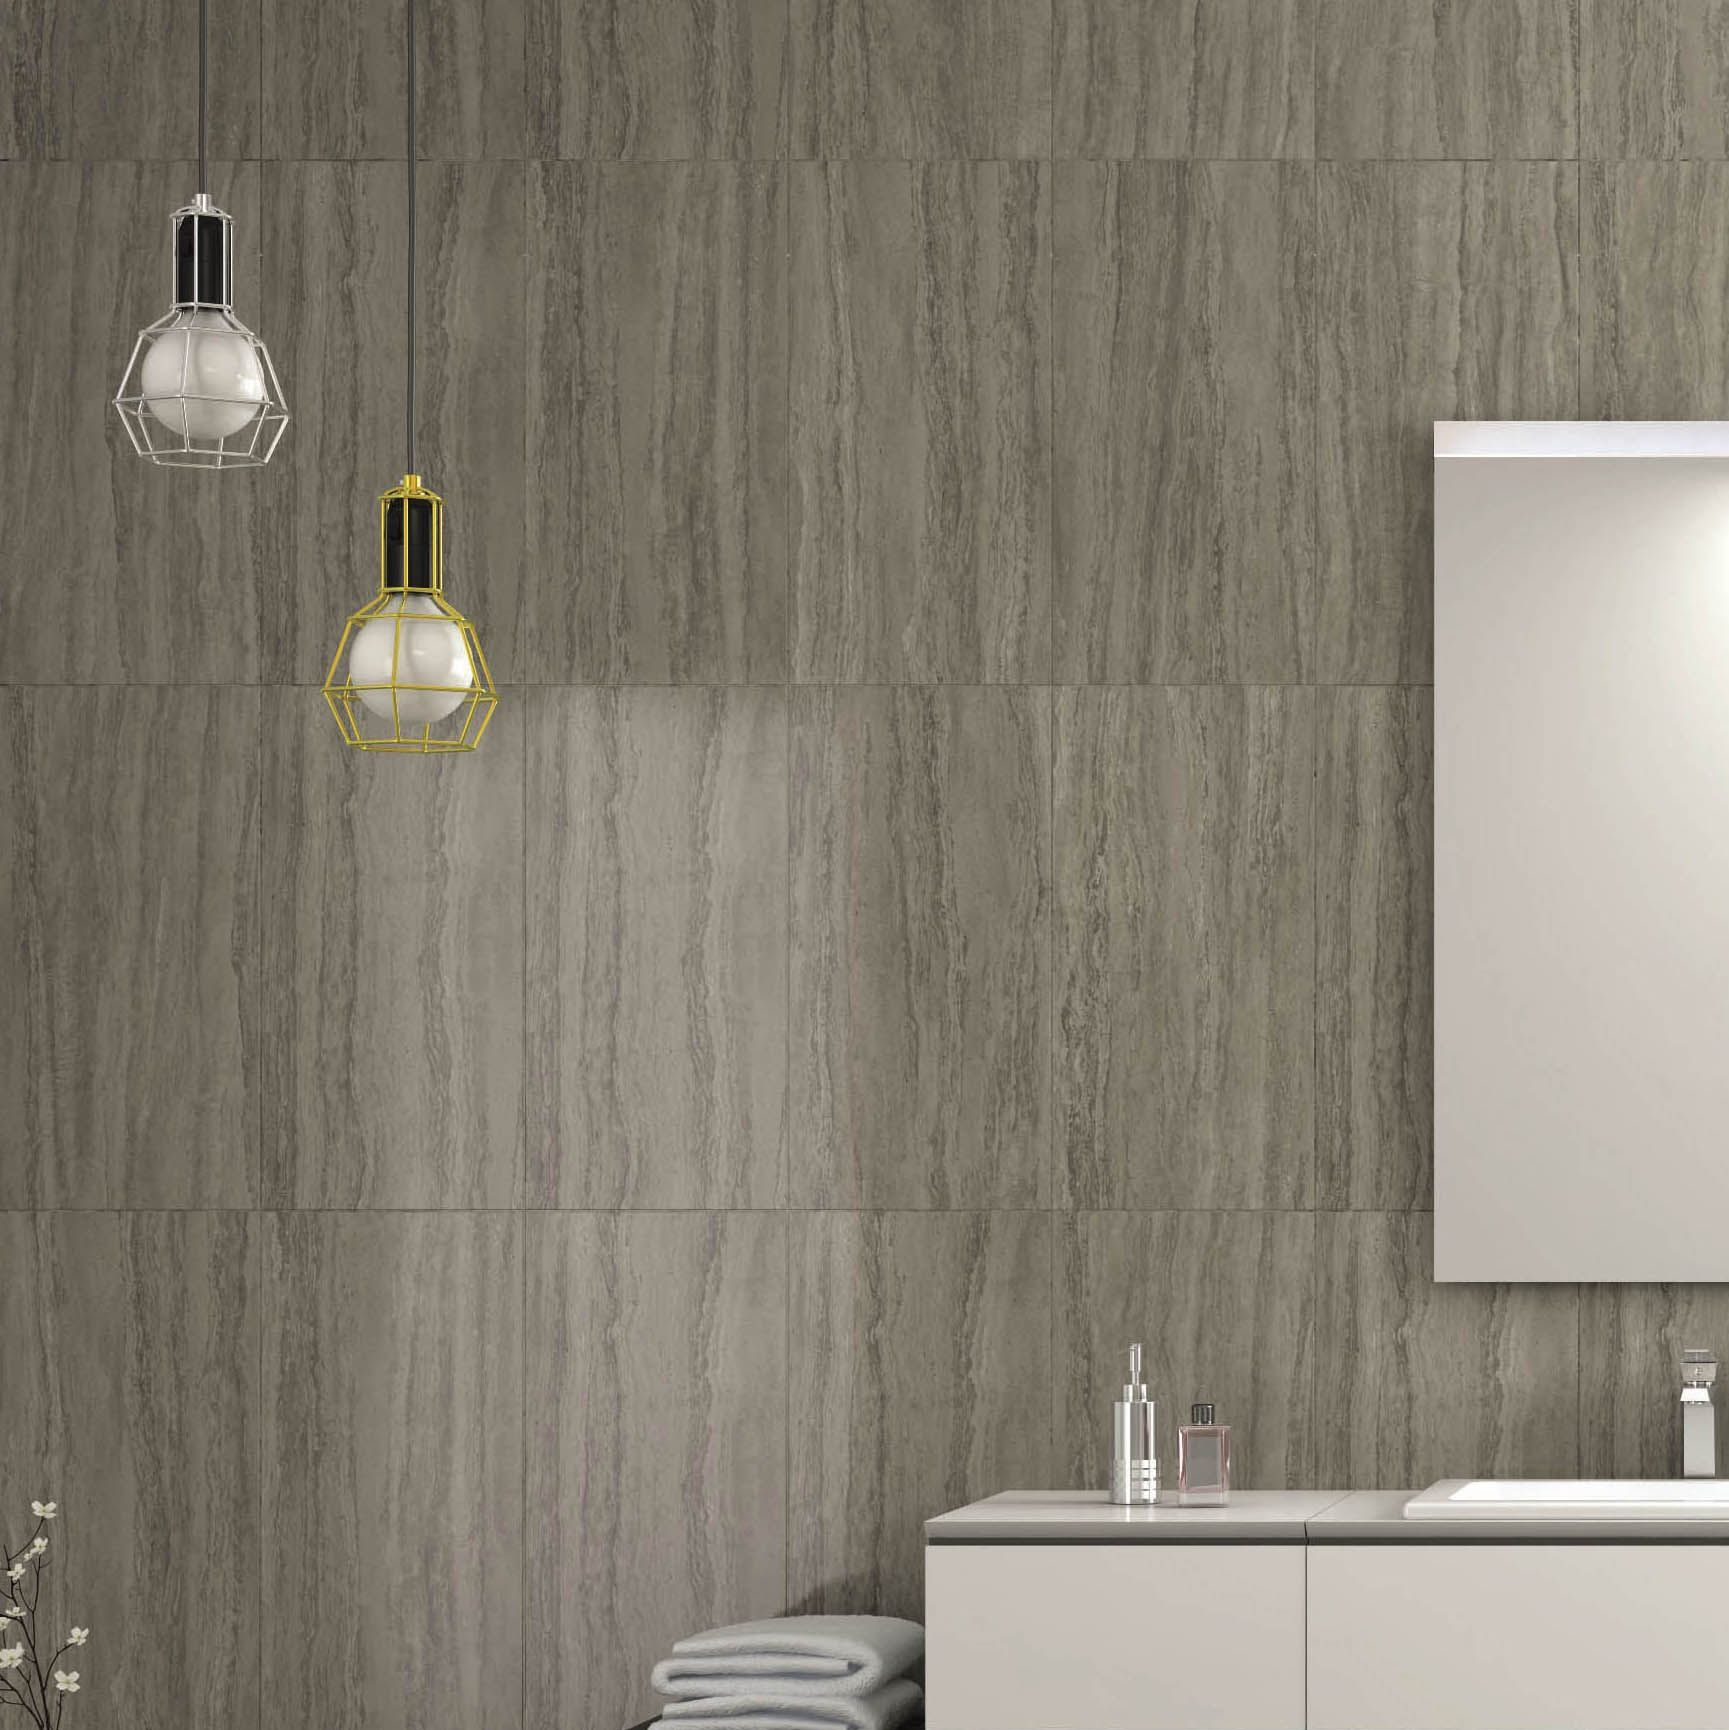 Perouso White Gloss Ceramic Wall Tile Pack Of 6 L 600mm: Anatolia Mink Stone Effect Plain Porcelain Wall & Floor